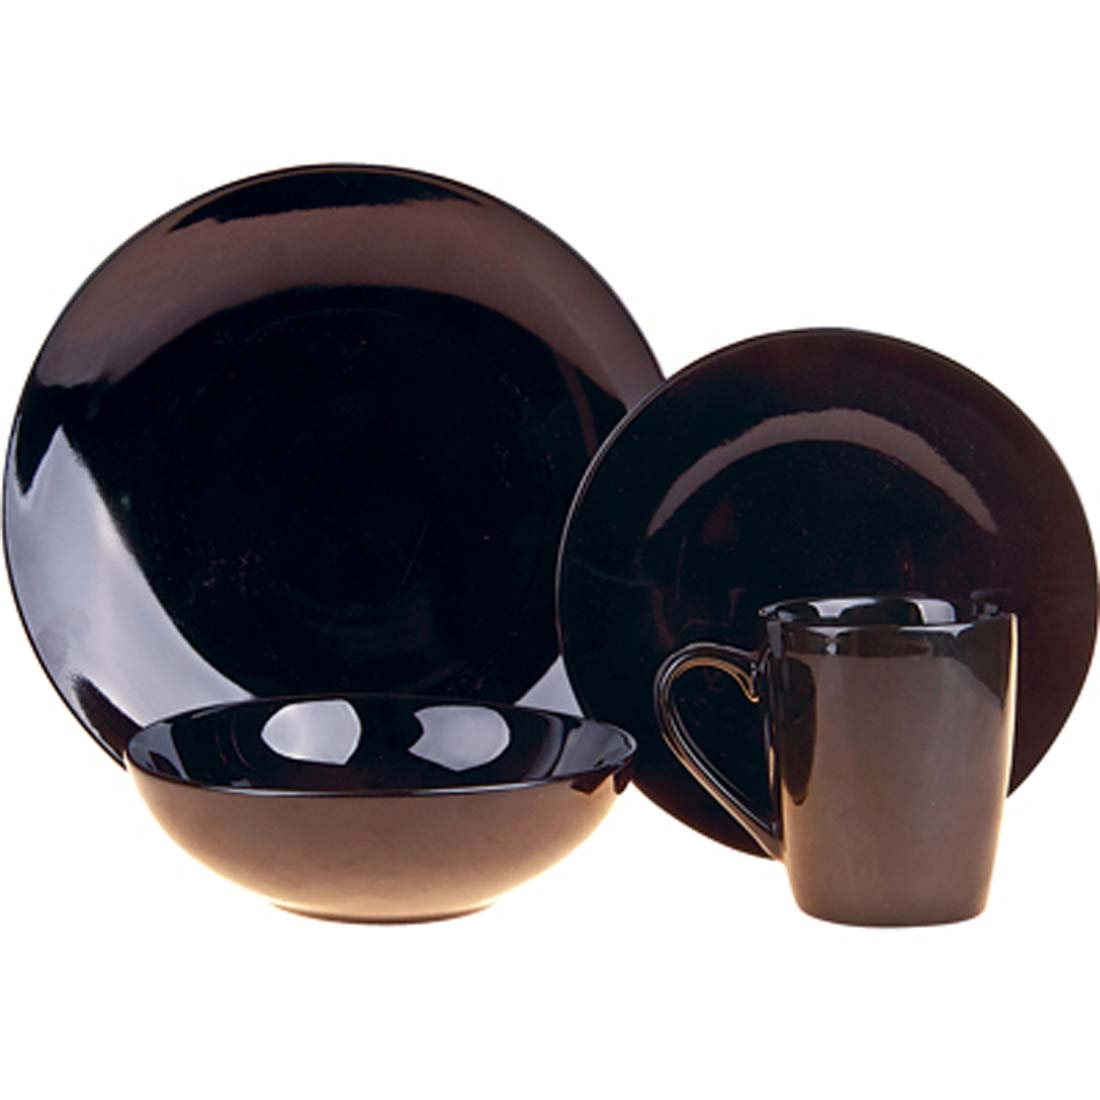 View CERAMIC DINNER SET 16 PC INCLUDES 4 PLATES 10.5 INCH/4 PLATES 7.5 INCH/4 BOWLS 6 INCH & 4 MUGS 12 OZ BLACK